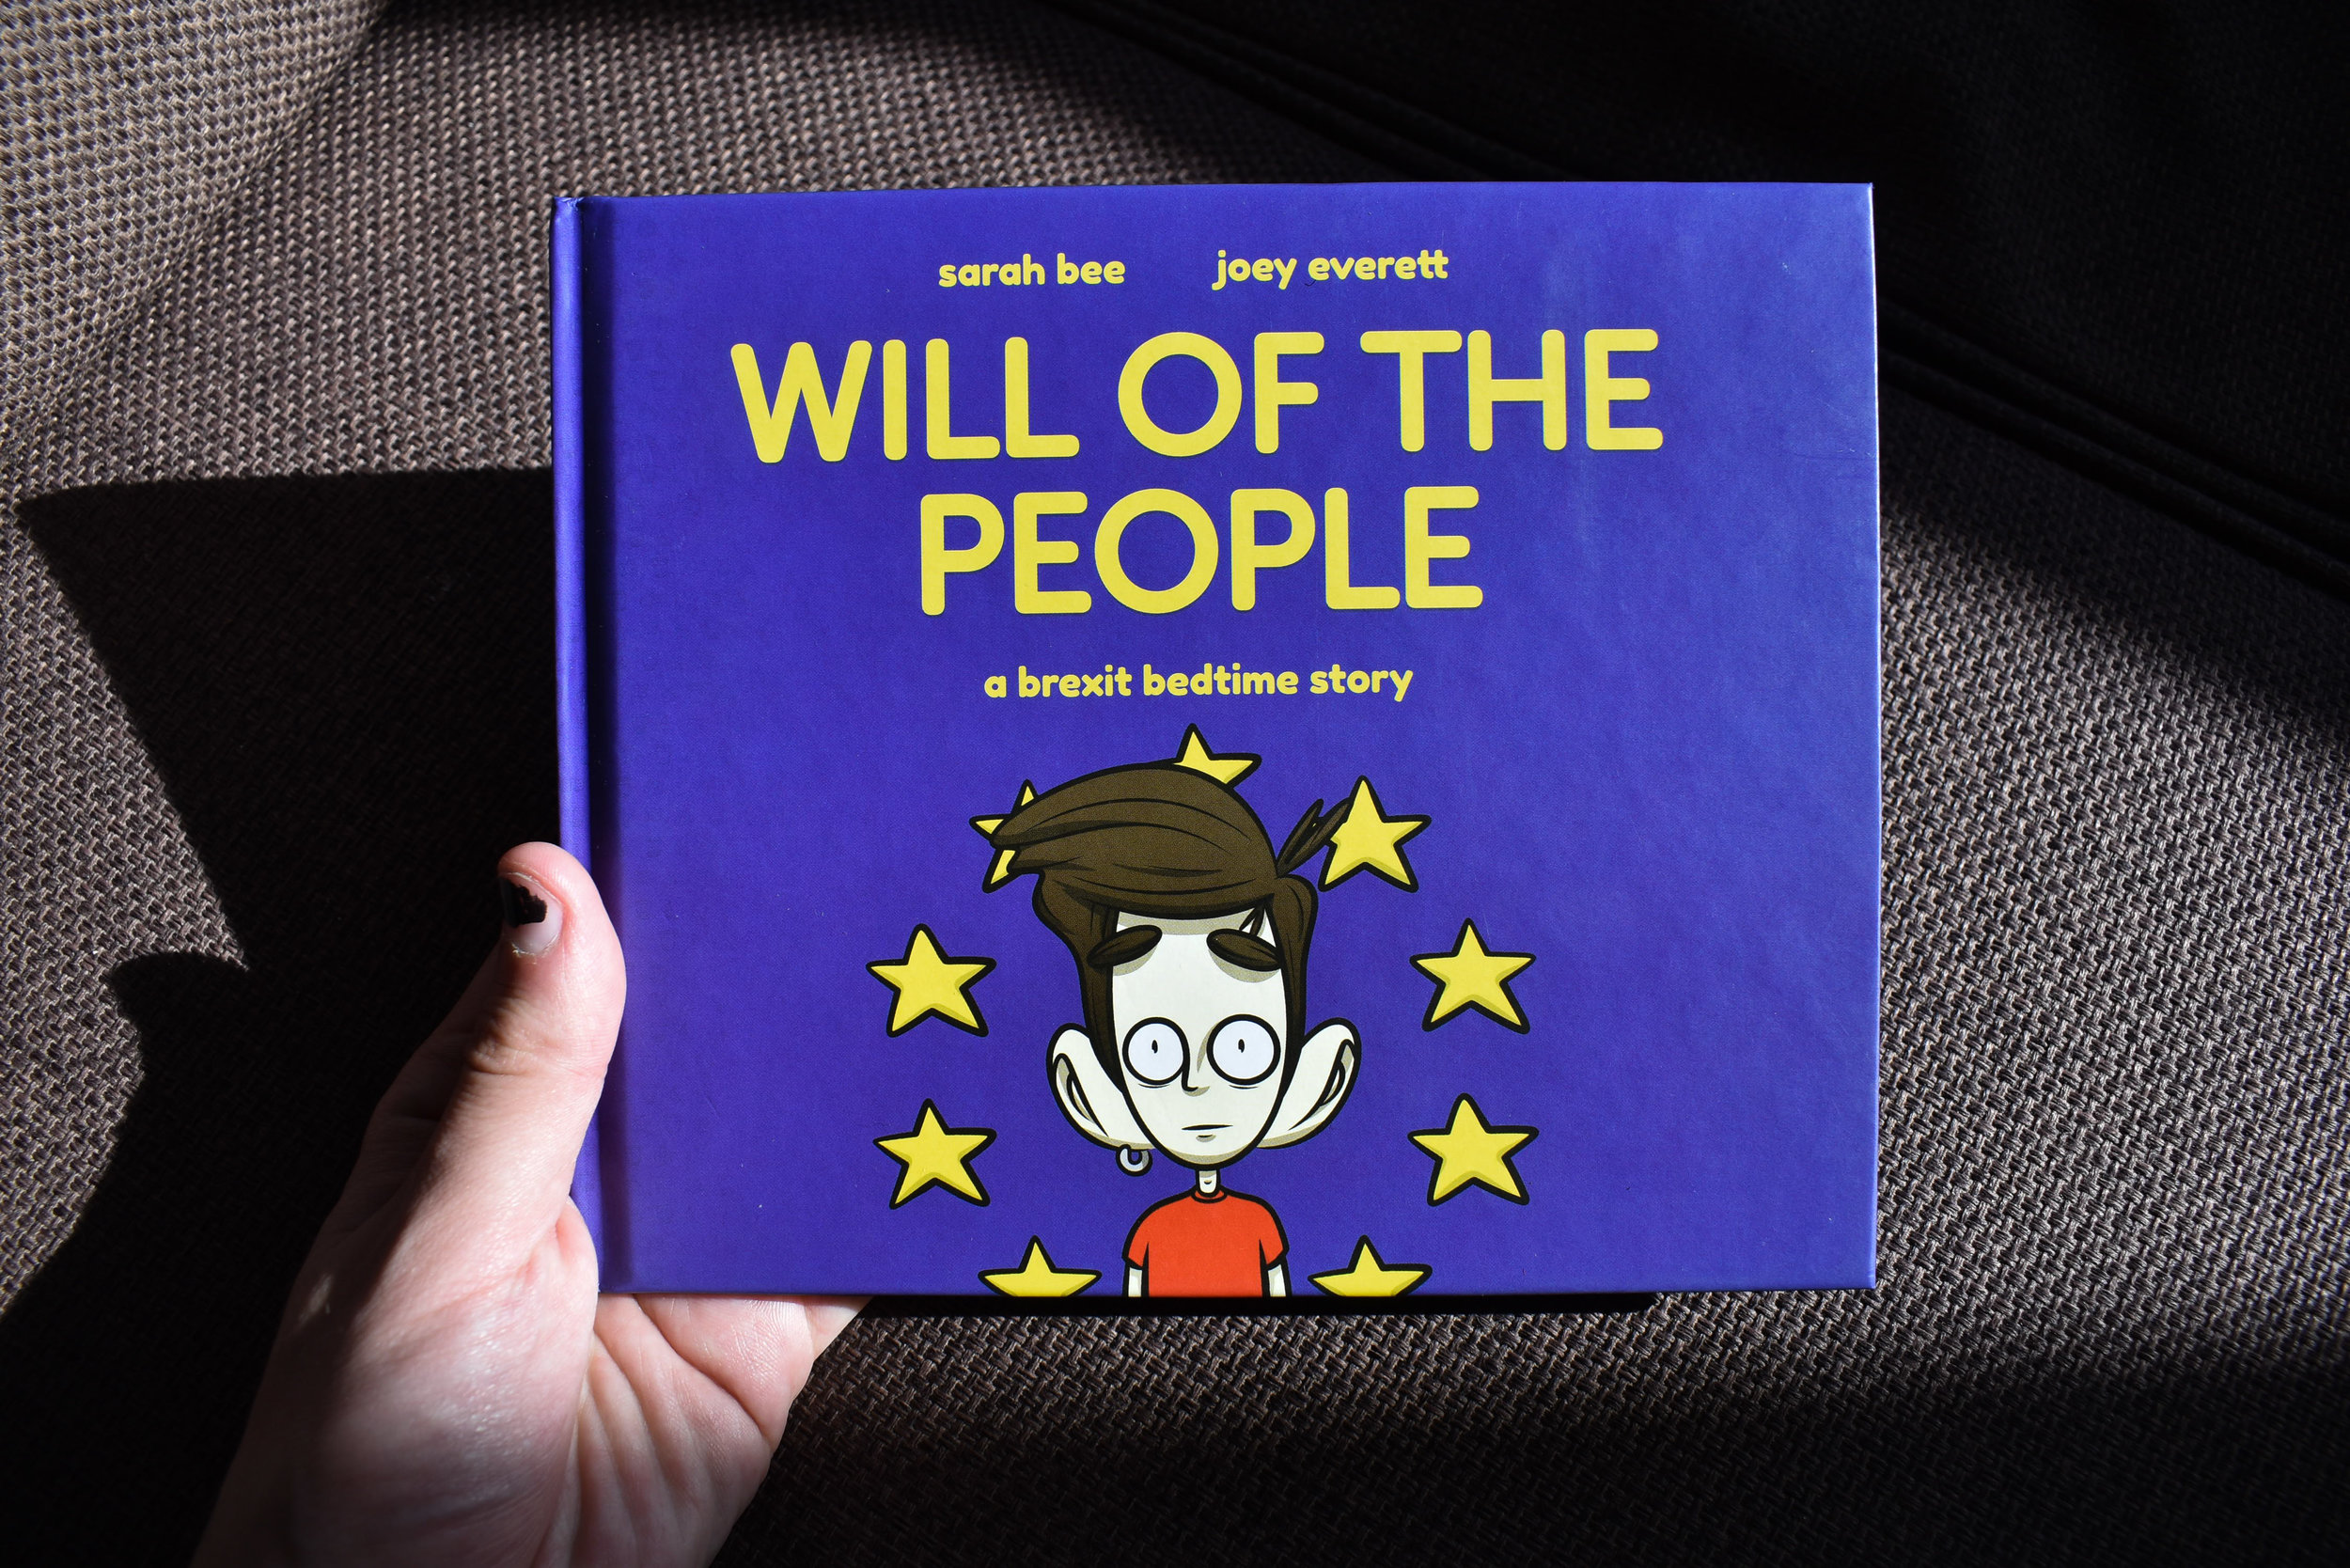 WILL OF THE PEOPLE - 04/2018